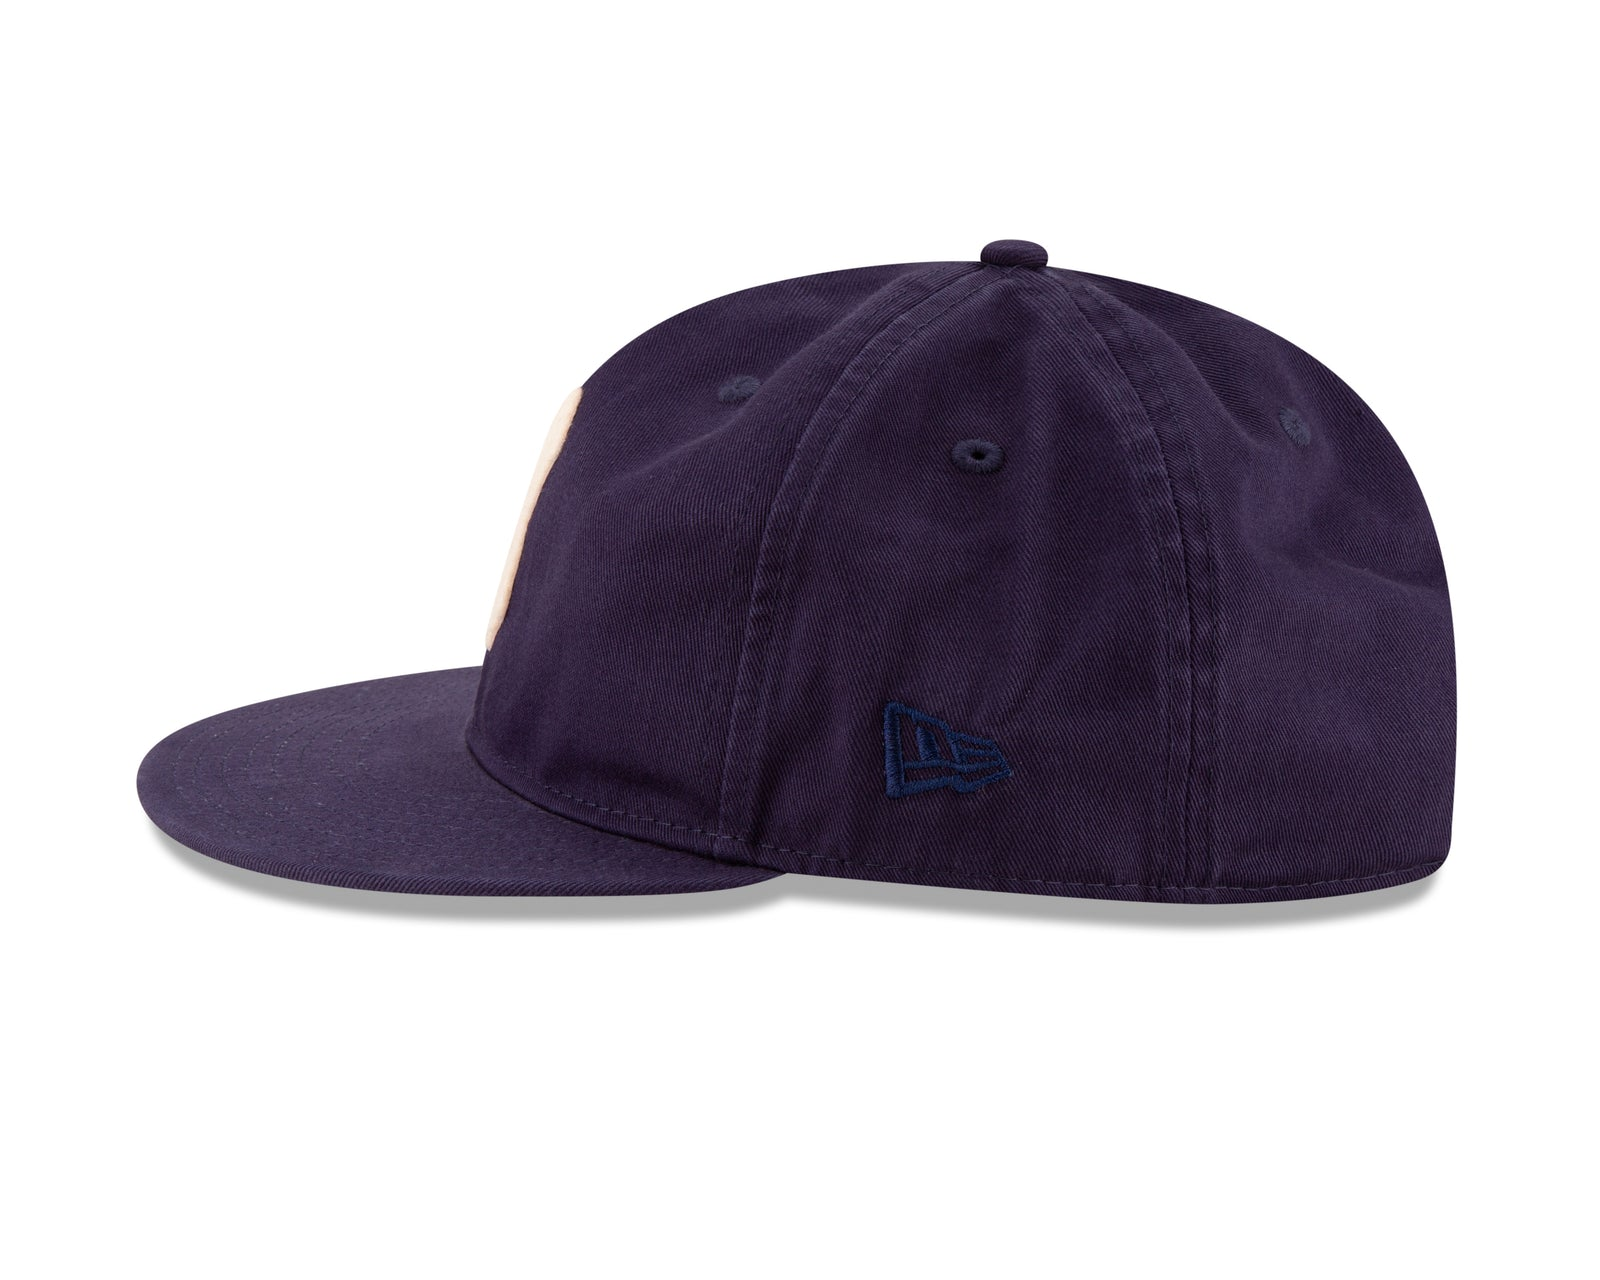 BKc x New Era Felt 'B' Varsity Cotton Cap Navy